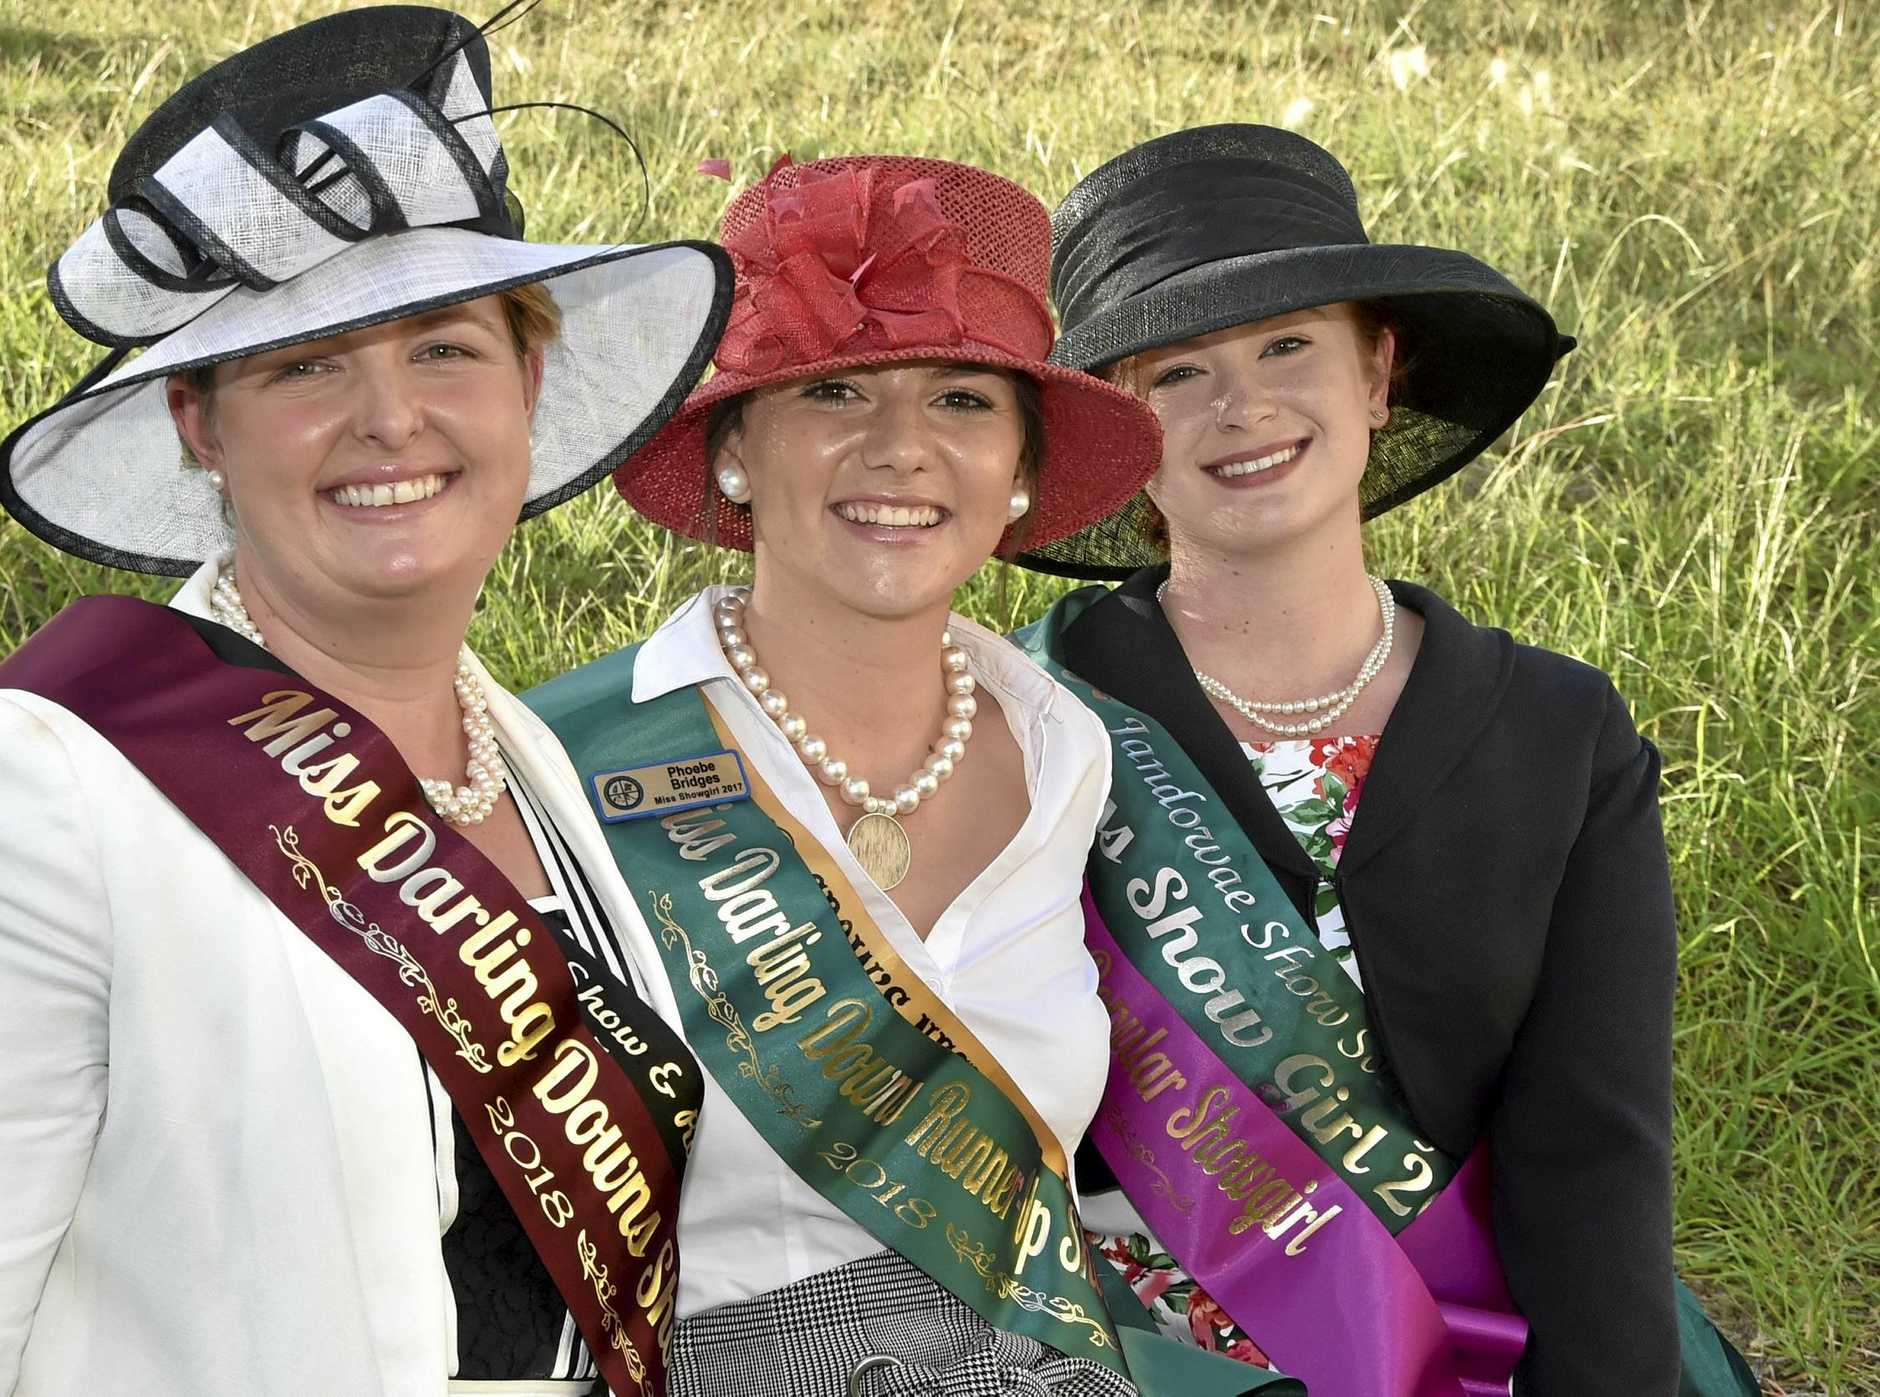 CROWNED: Celebrating their wins are (from left) Miss Darling Downs Showgirl Sarah Wilson, Miss Darling Downs Showgirl runner-up Phoebe Bridges and Miss Popular Adrienne Magnussen.